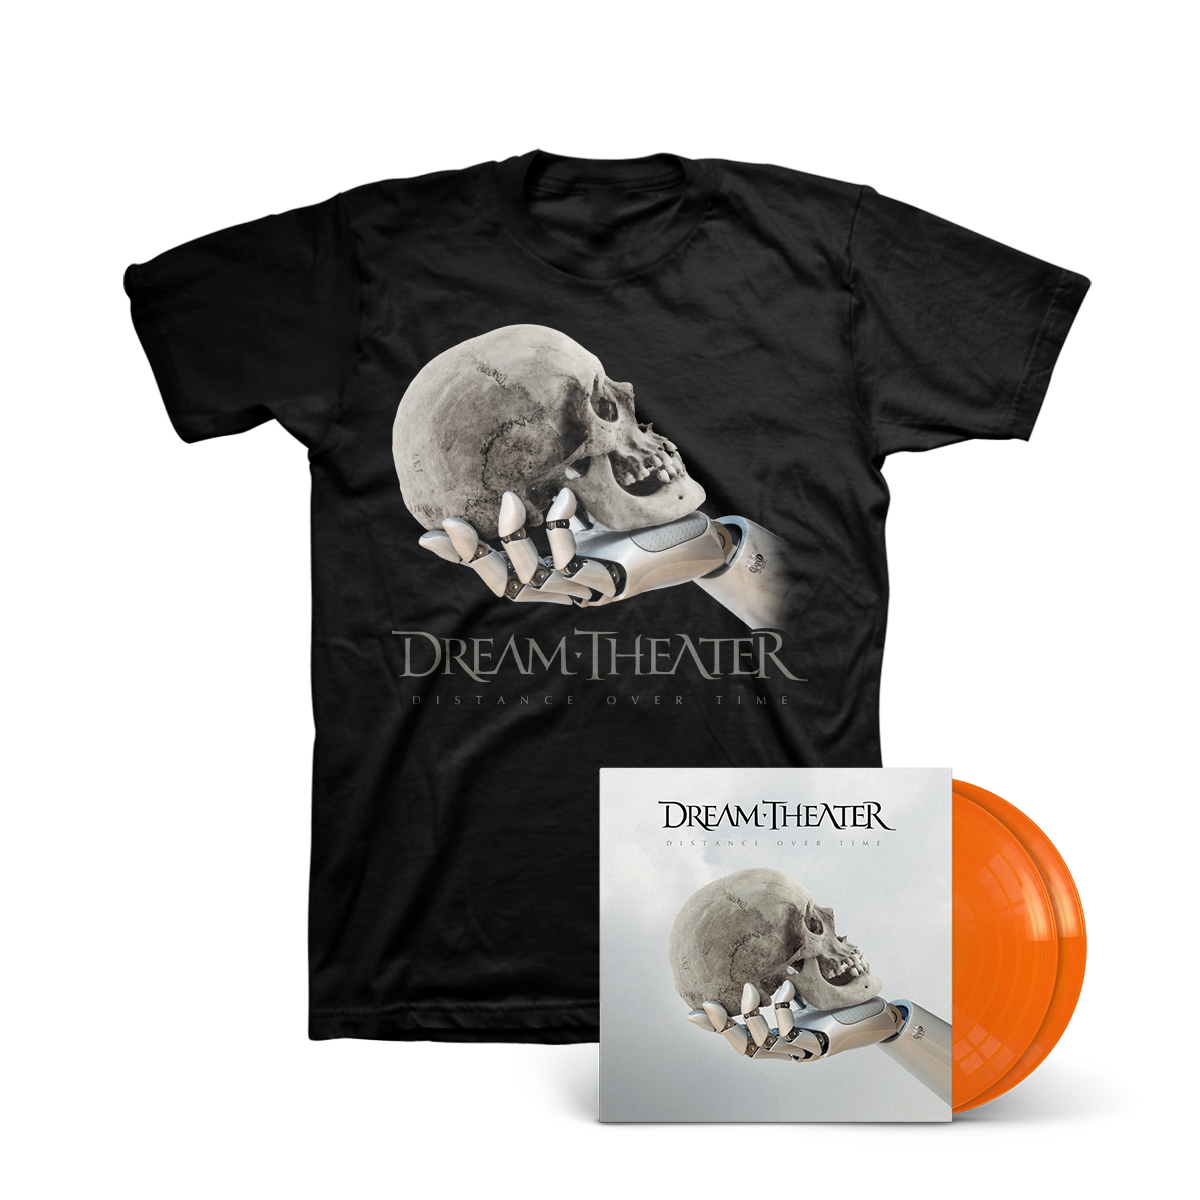 Dream Theater - Distance Over Time Translucent Orange 2LP + T-shirt